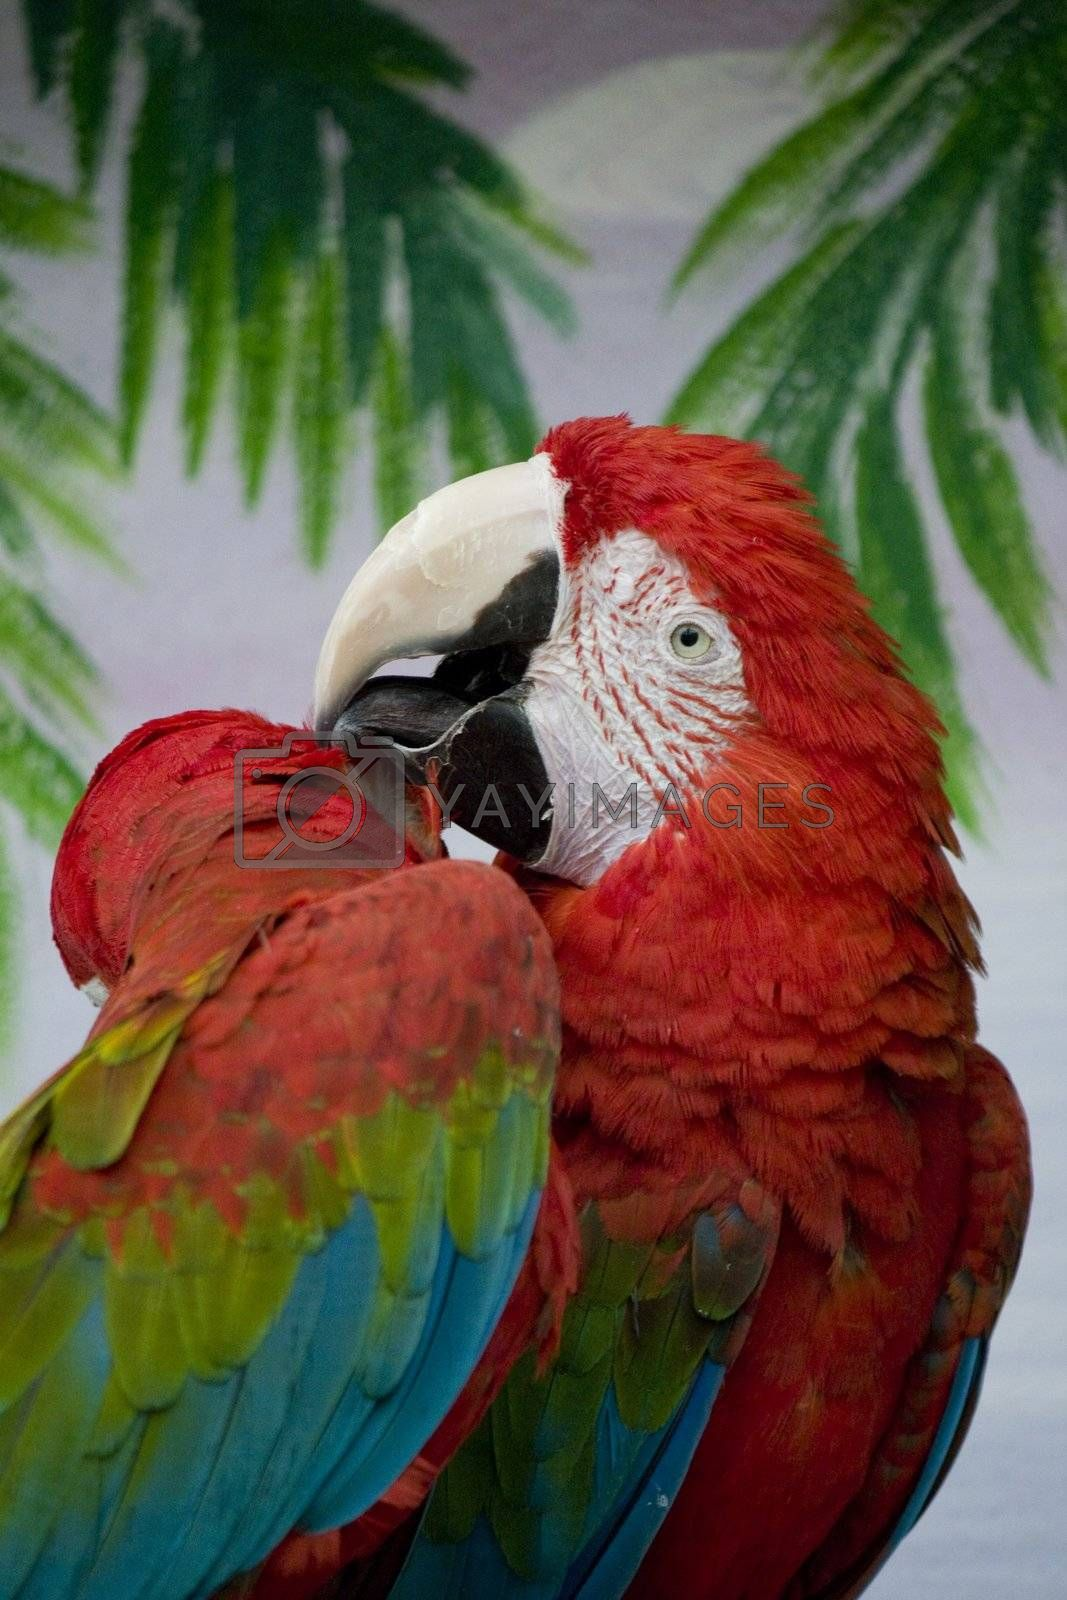 Close view of a scarlet macaw making feather treatment.